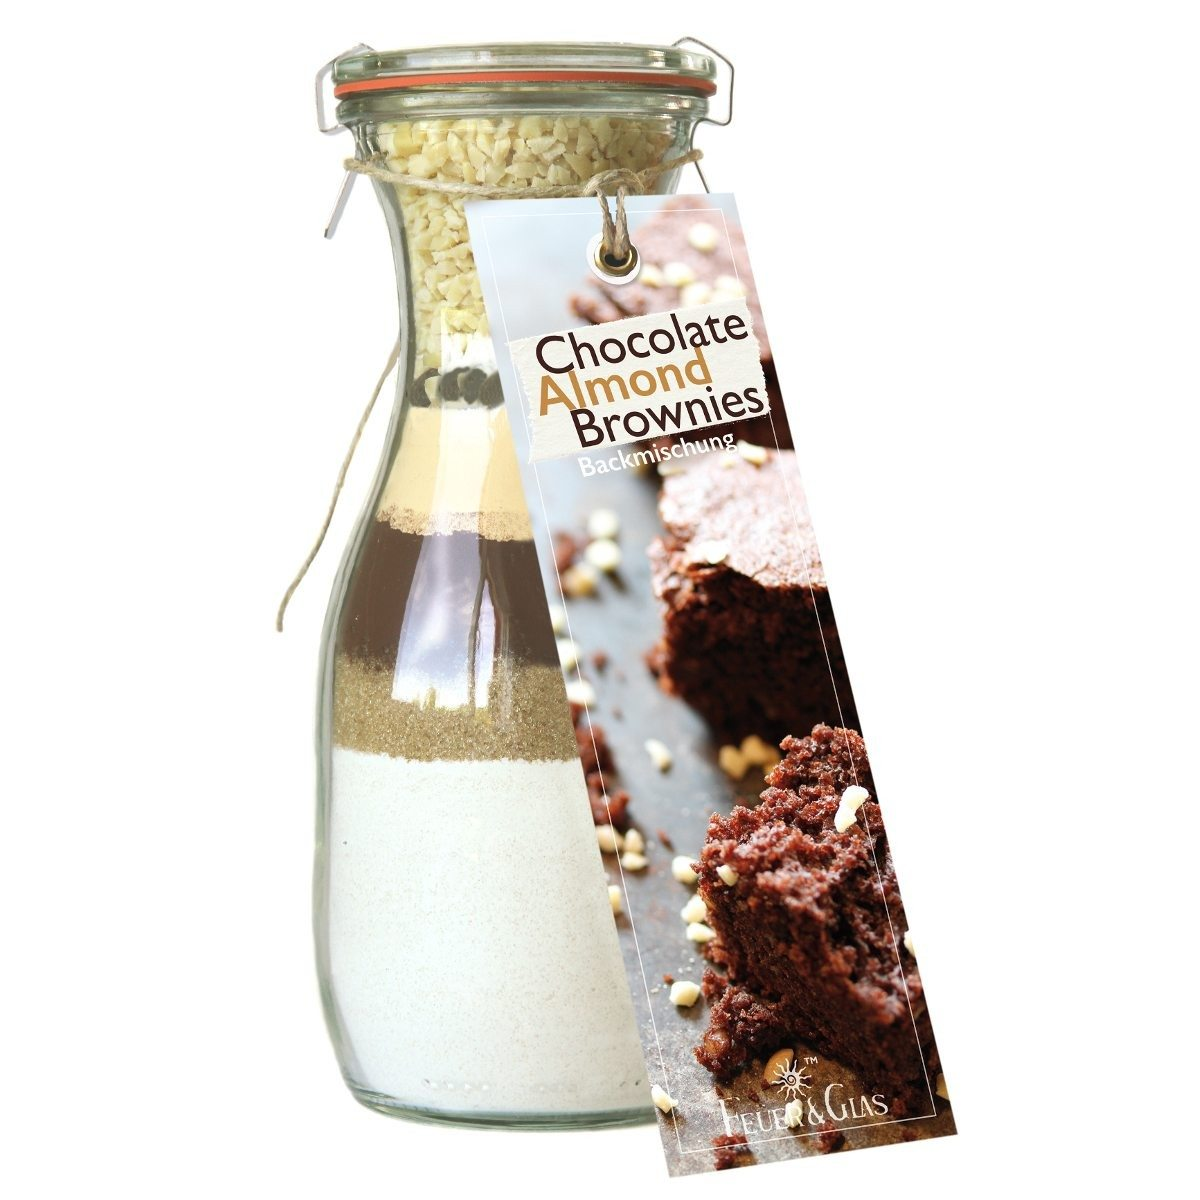 Chocolate-Almond-Brownies – Backmischung im Glas